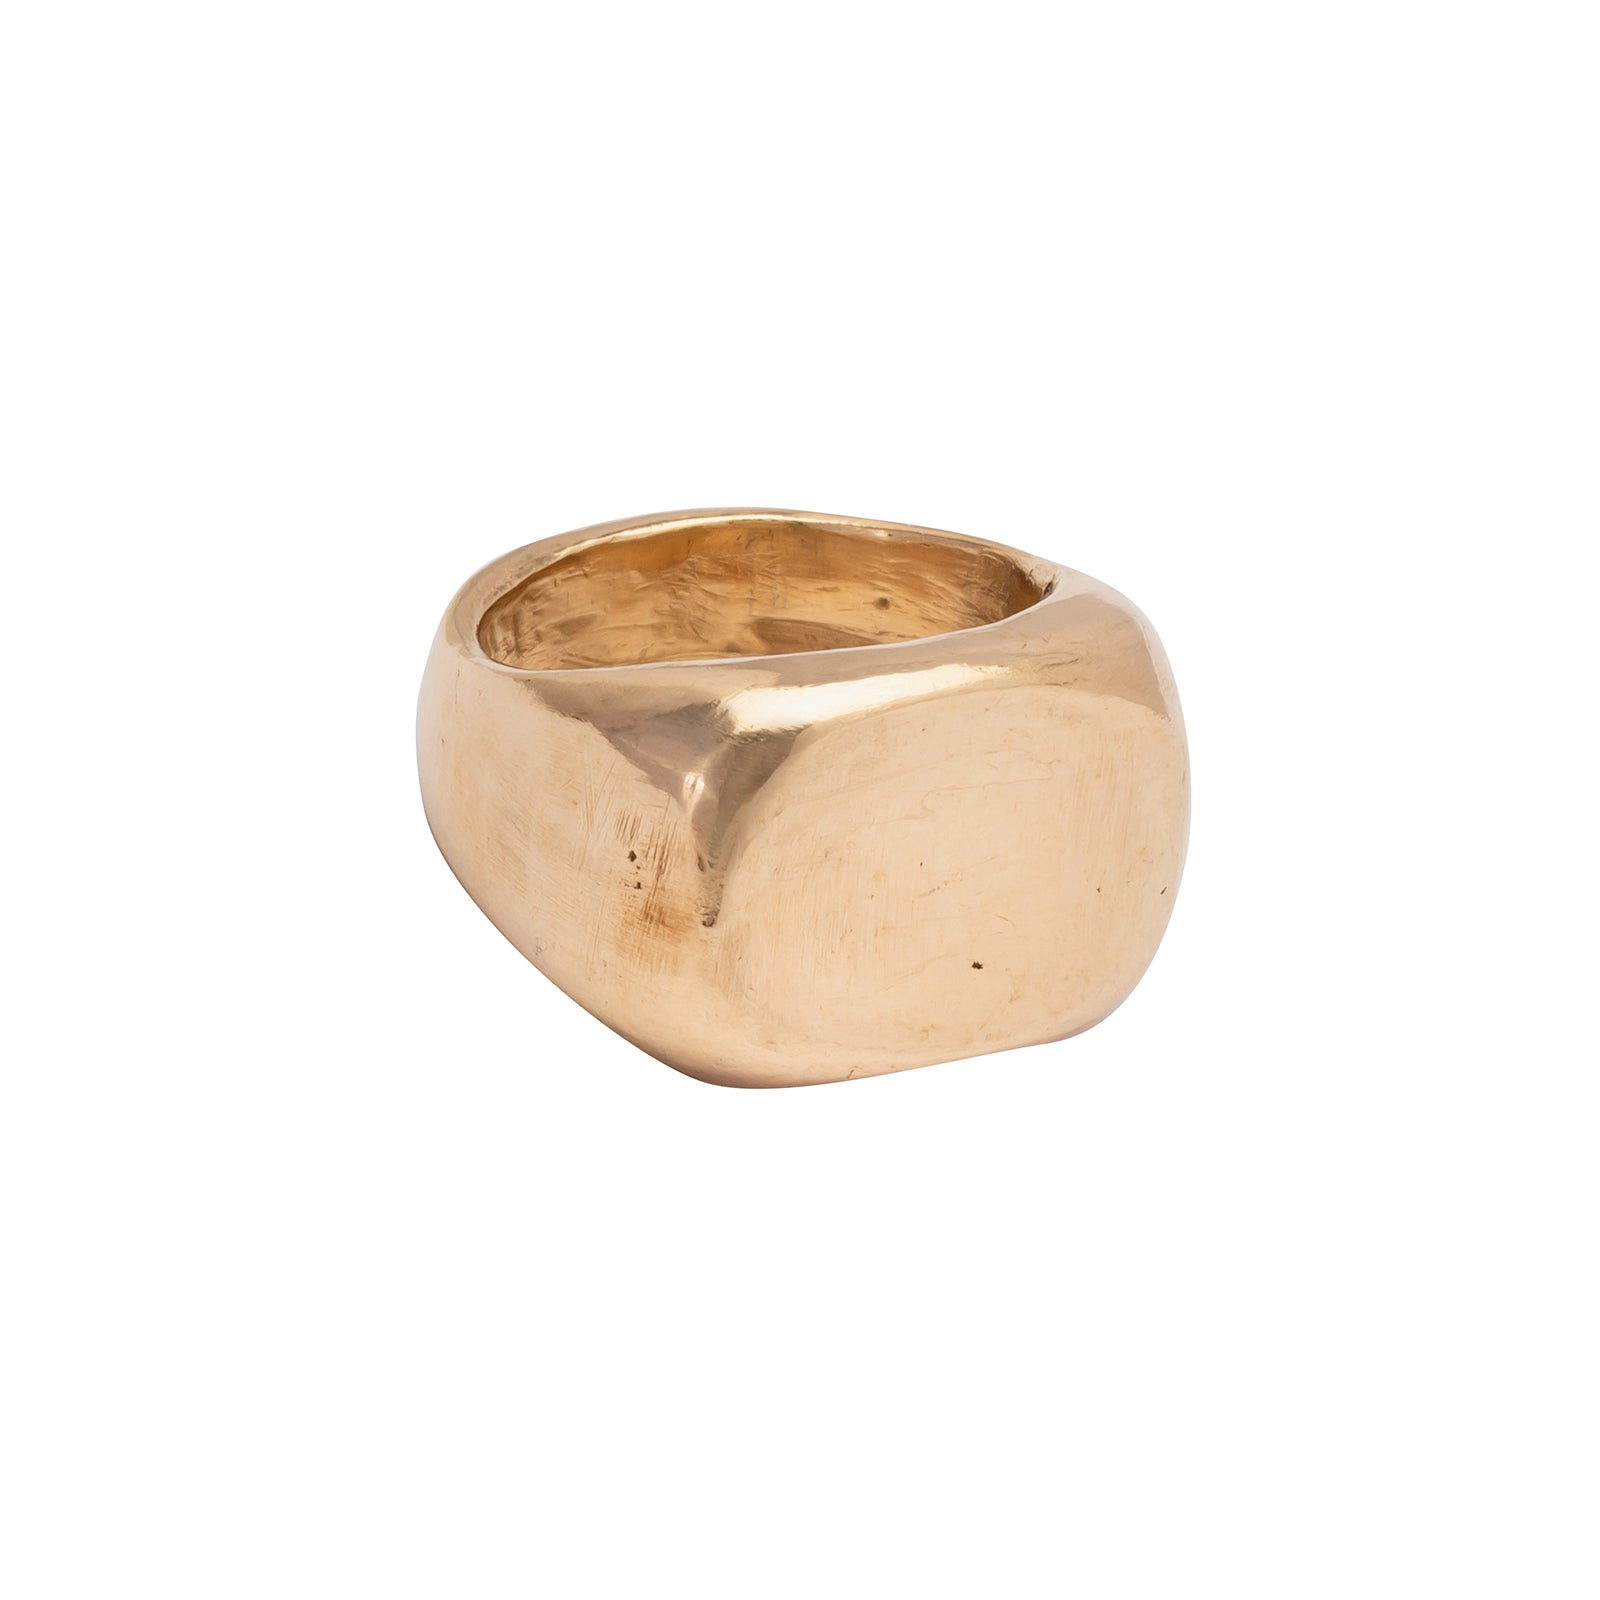 James Colarusso Small Concave Ring - Gold - Rings - Broken English Jewelry